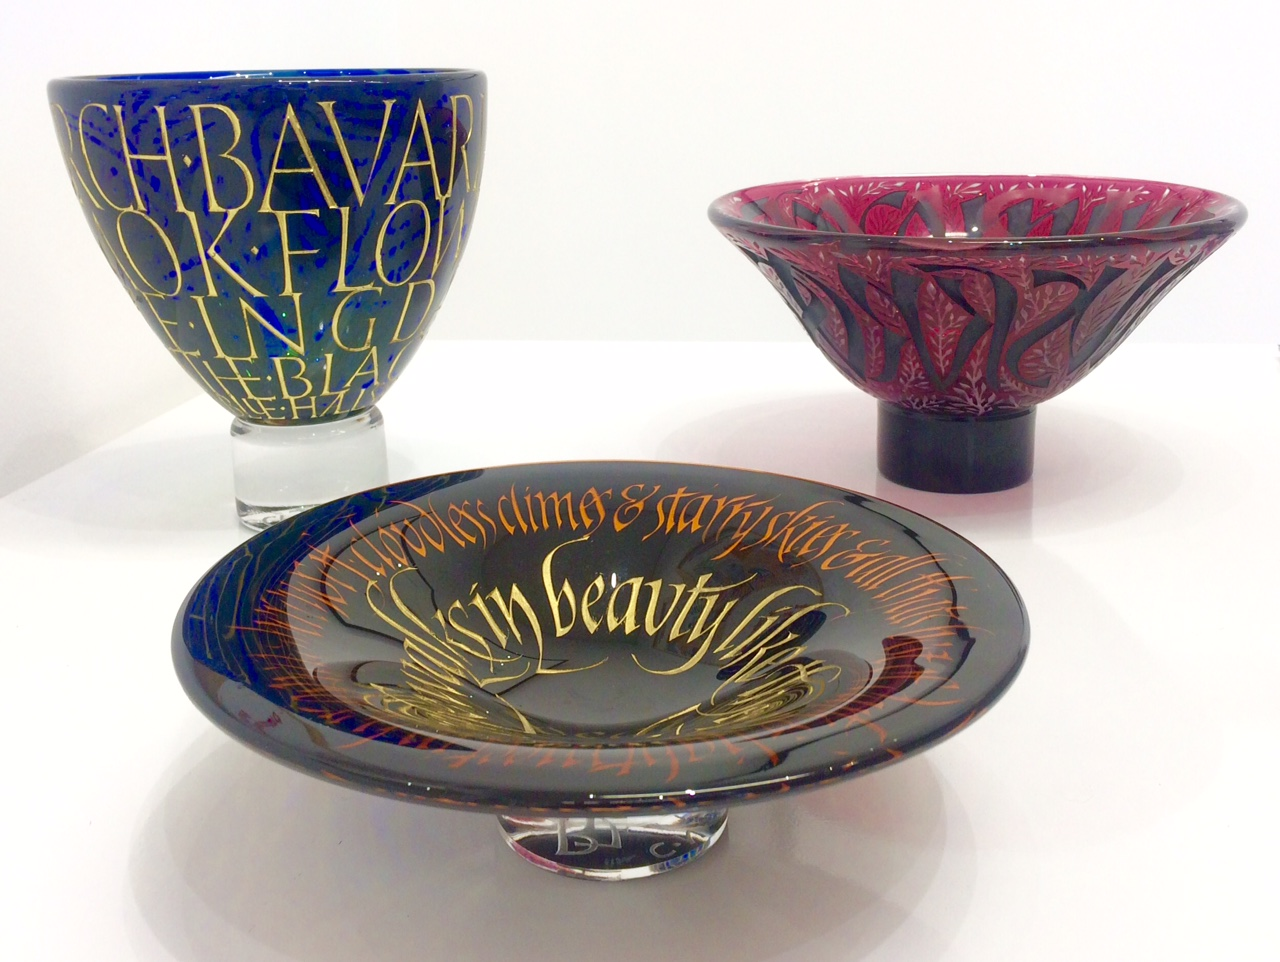 Footed bowl , 'Bavarian Giants', DH Lawrence (left)  Overlay bowl , 'The coming musk-rose', Keats (right)  Overlay dish , 'She walks in beauty like the night', Byron (centre)